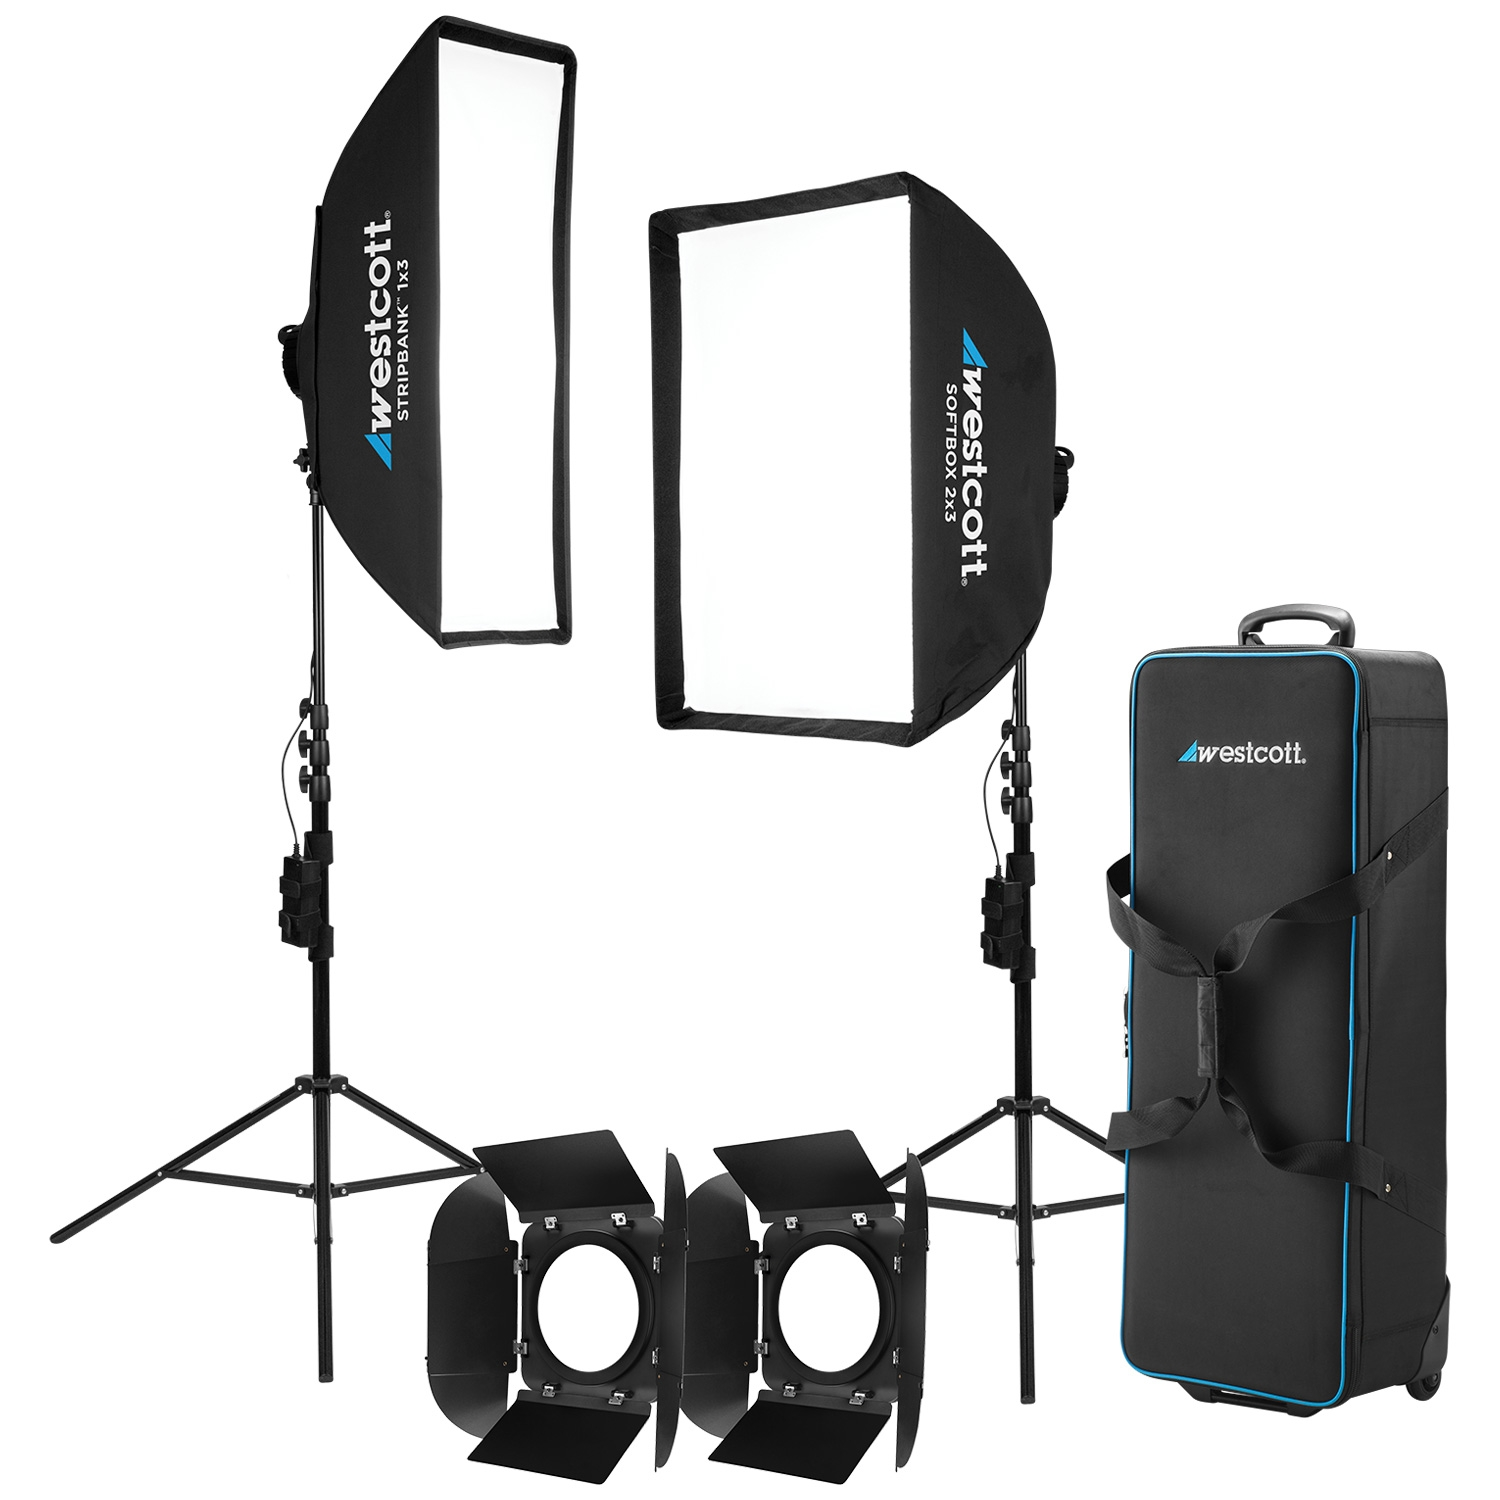 Solix Daylight 2-Light Kit by Jen Rozenbaum (US/CA Plug)